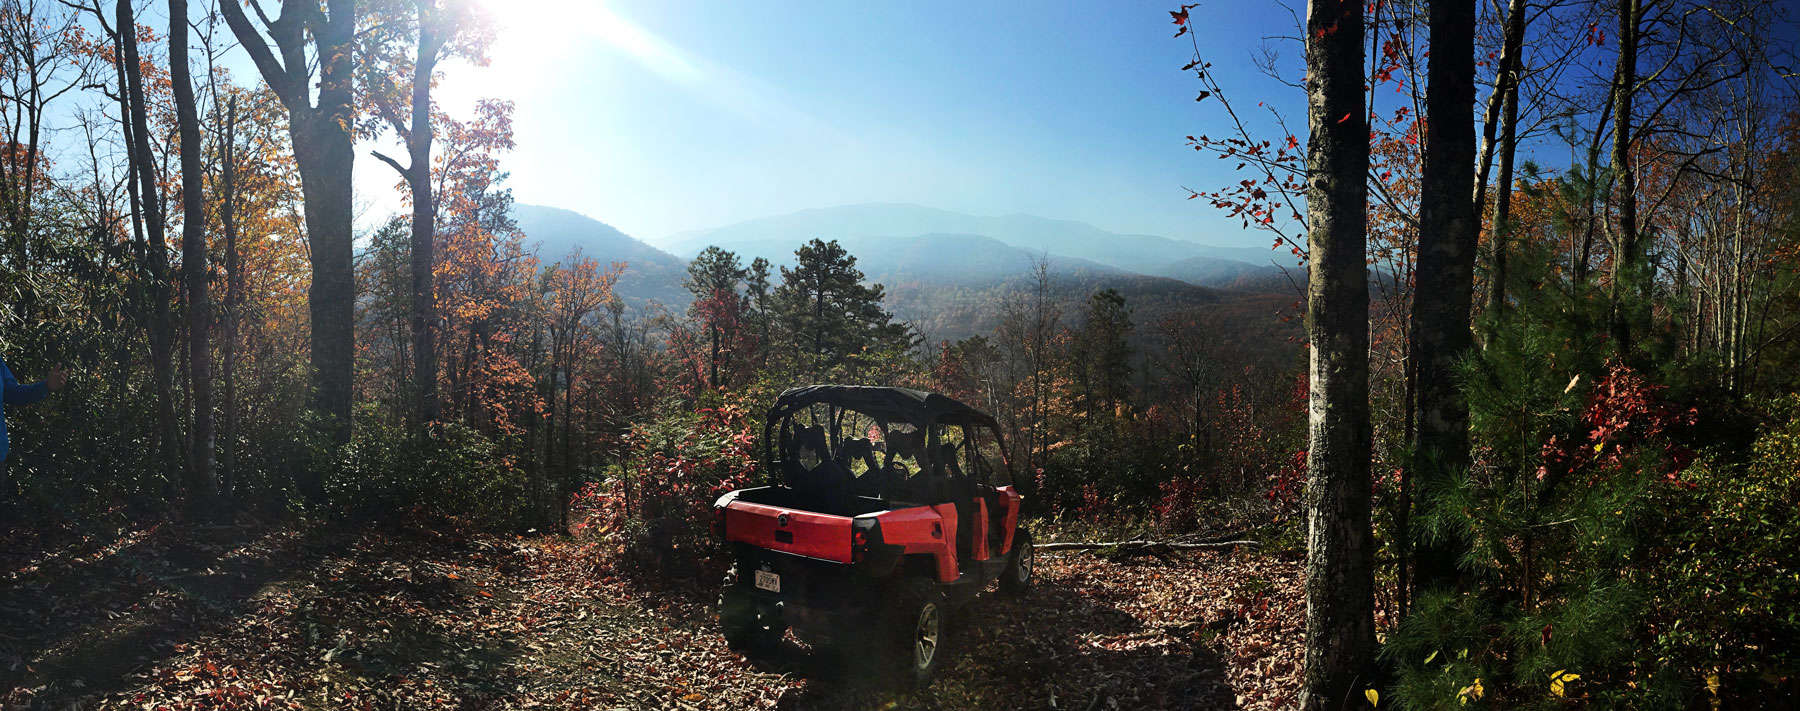 UTV Tours | Gatlinburg & Pigeon Forge TN | Smoky Mountain Adventure